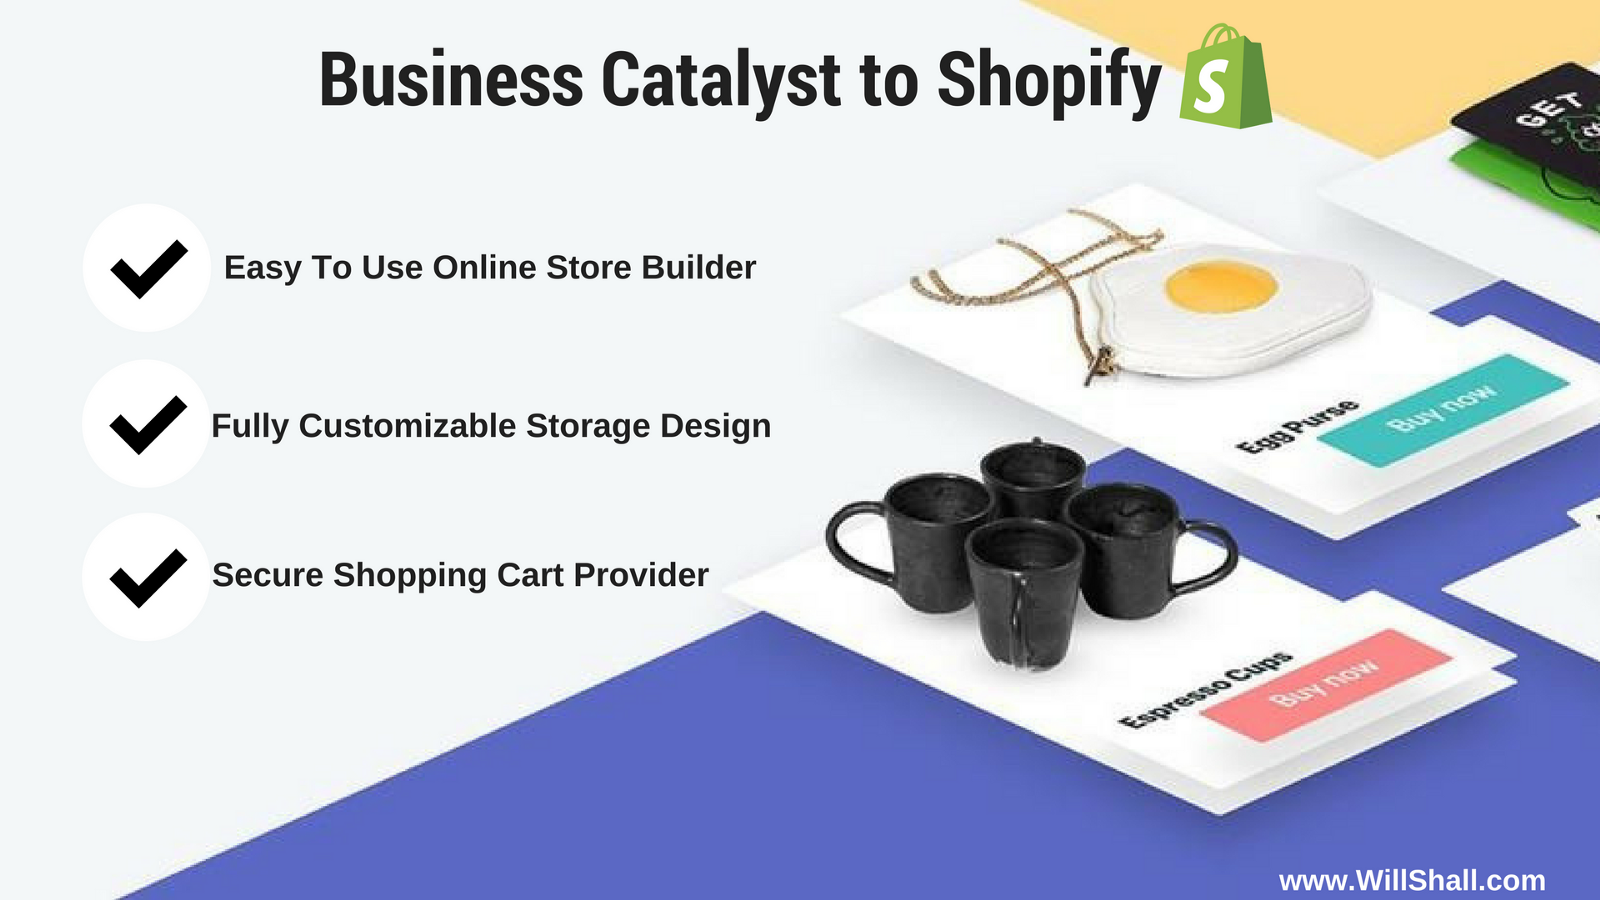 Migration service from business catalyst into shopify by willshall friedricerecipe Images